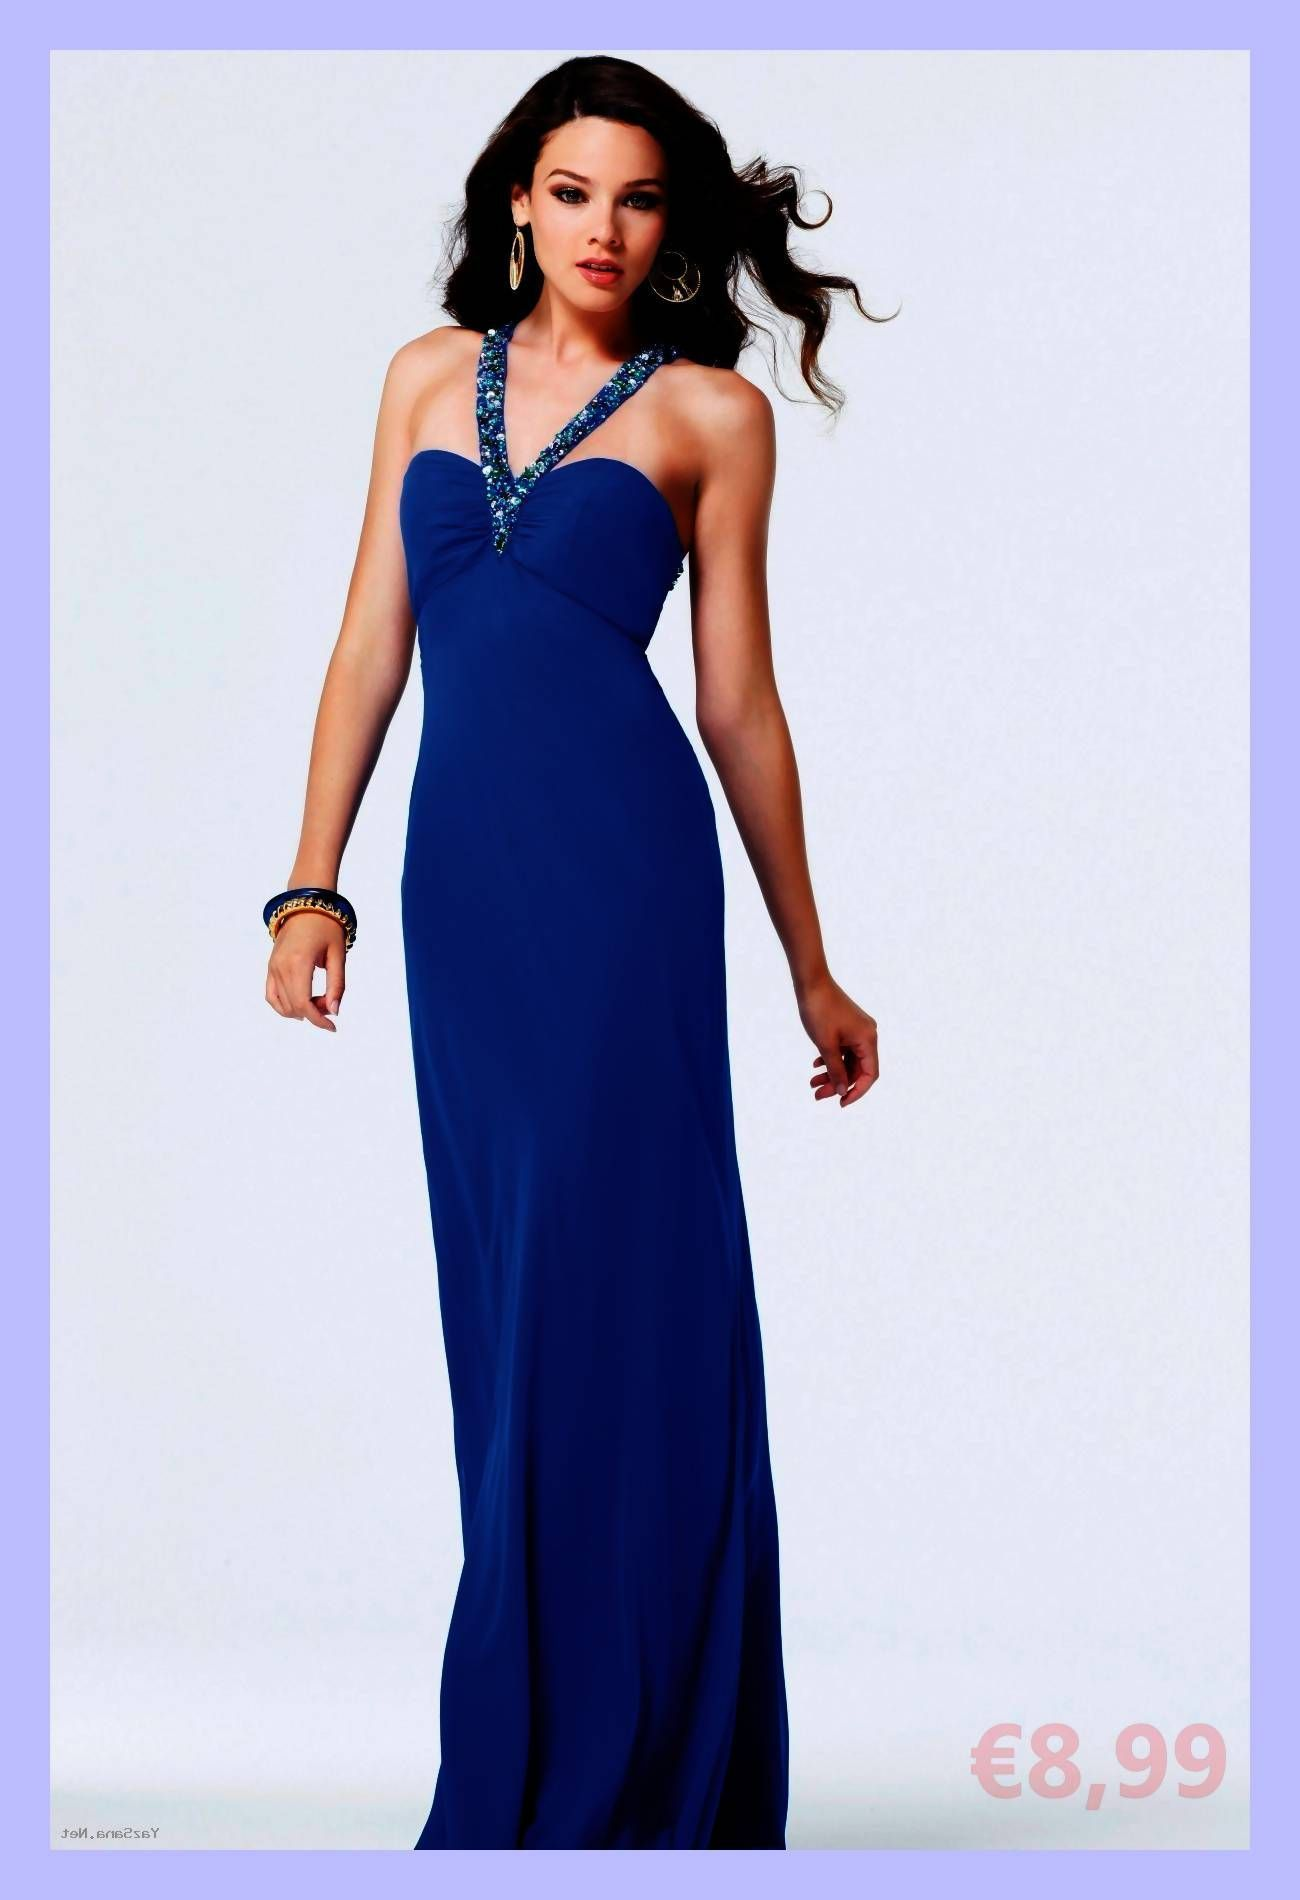 Outfits Man Woman Boy Girl At Rainbow At Justice Around The World At Target S And Outings Amazon As Zodiac Signs Winter Wedding Outfits Outfits Night Outfits [ 1900 x 1300 Pixel ]